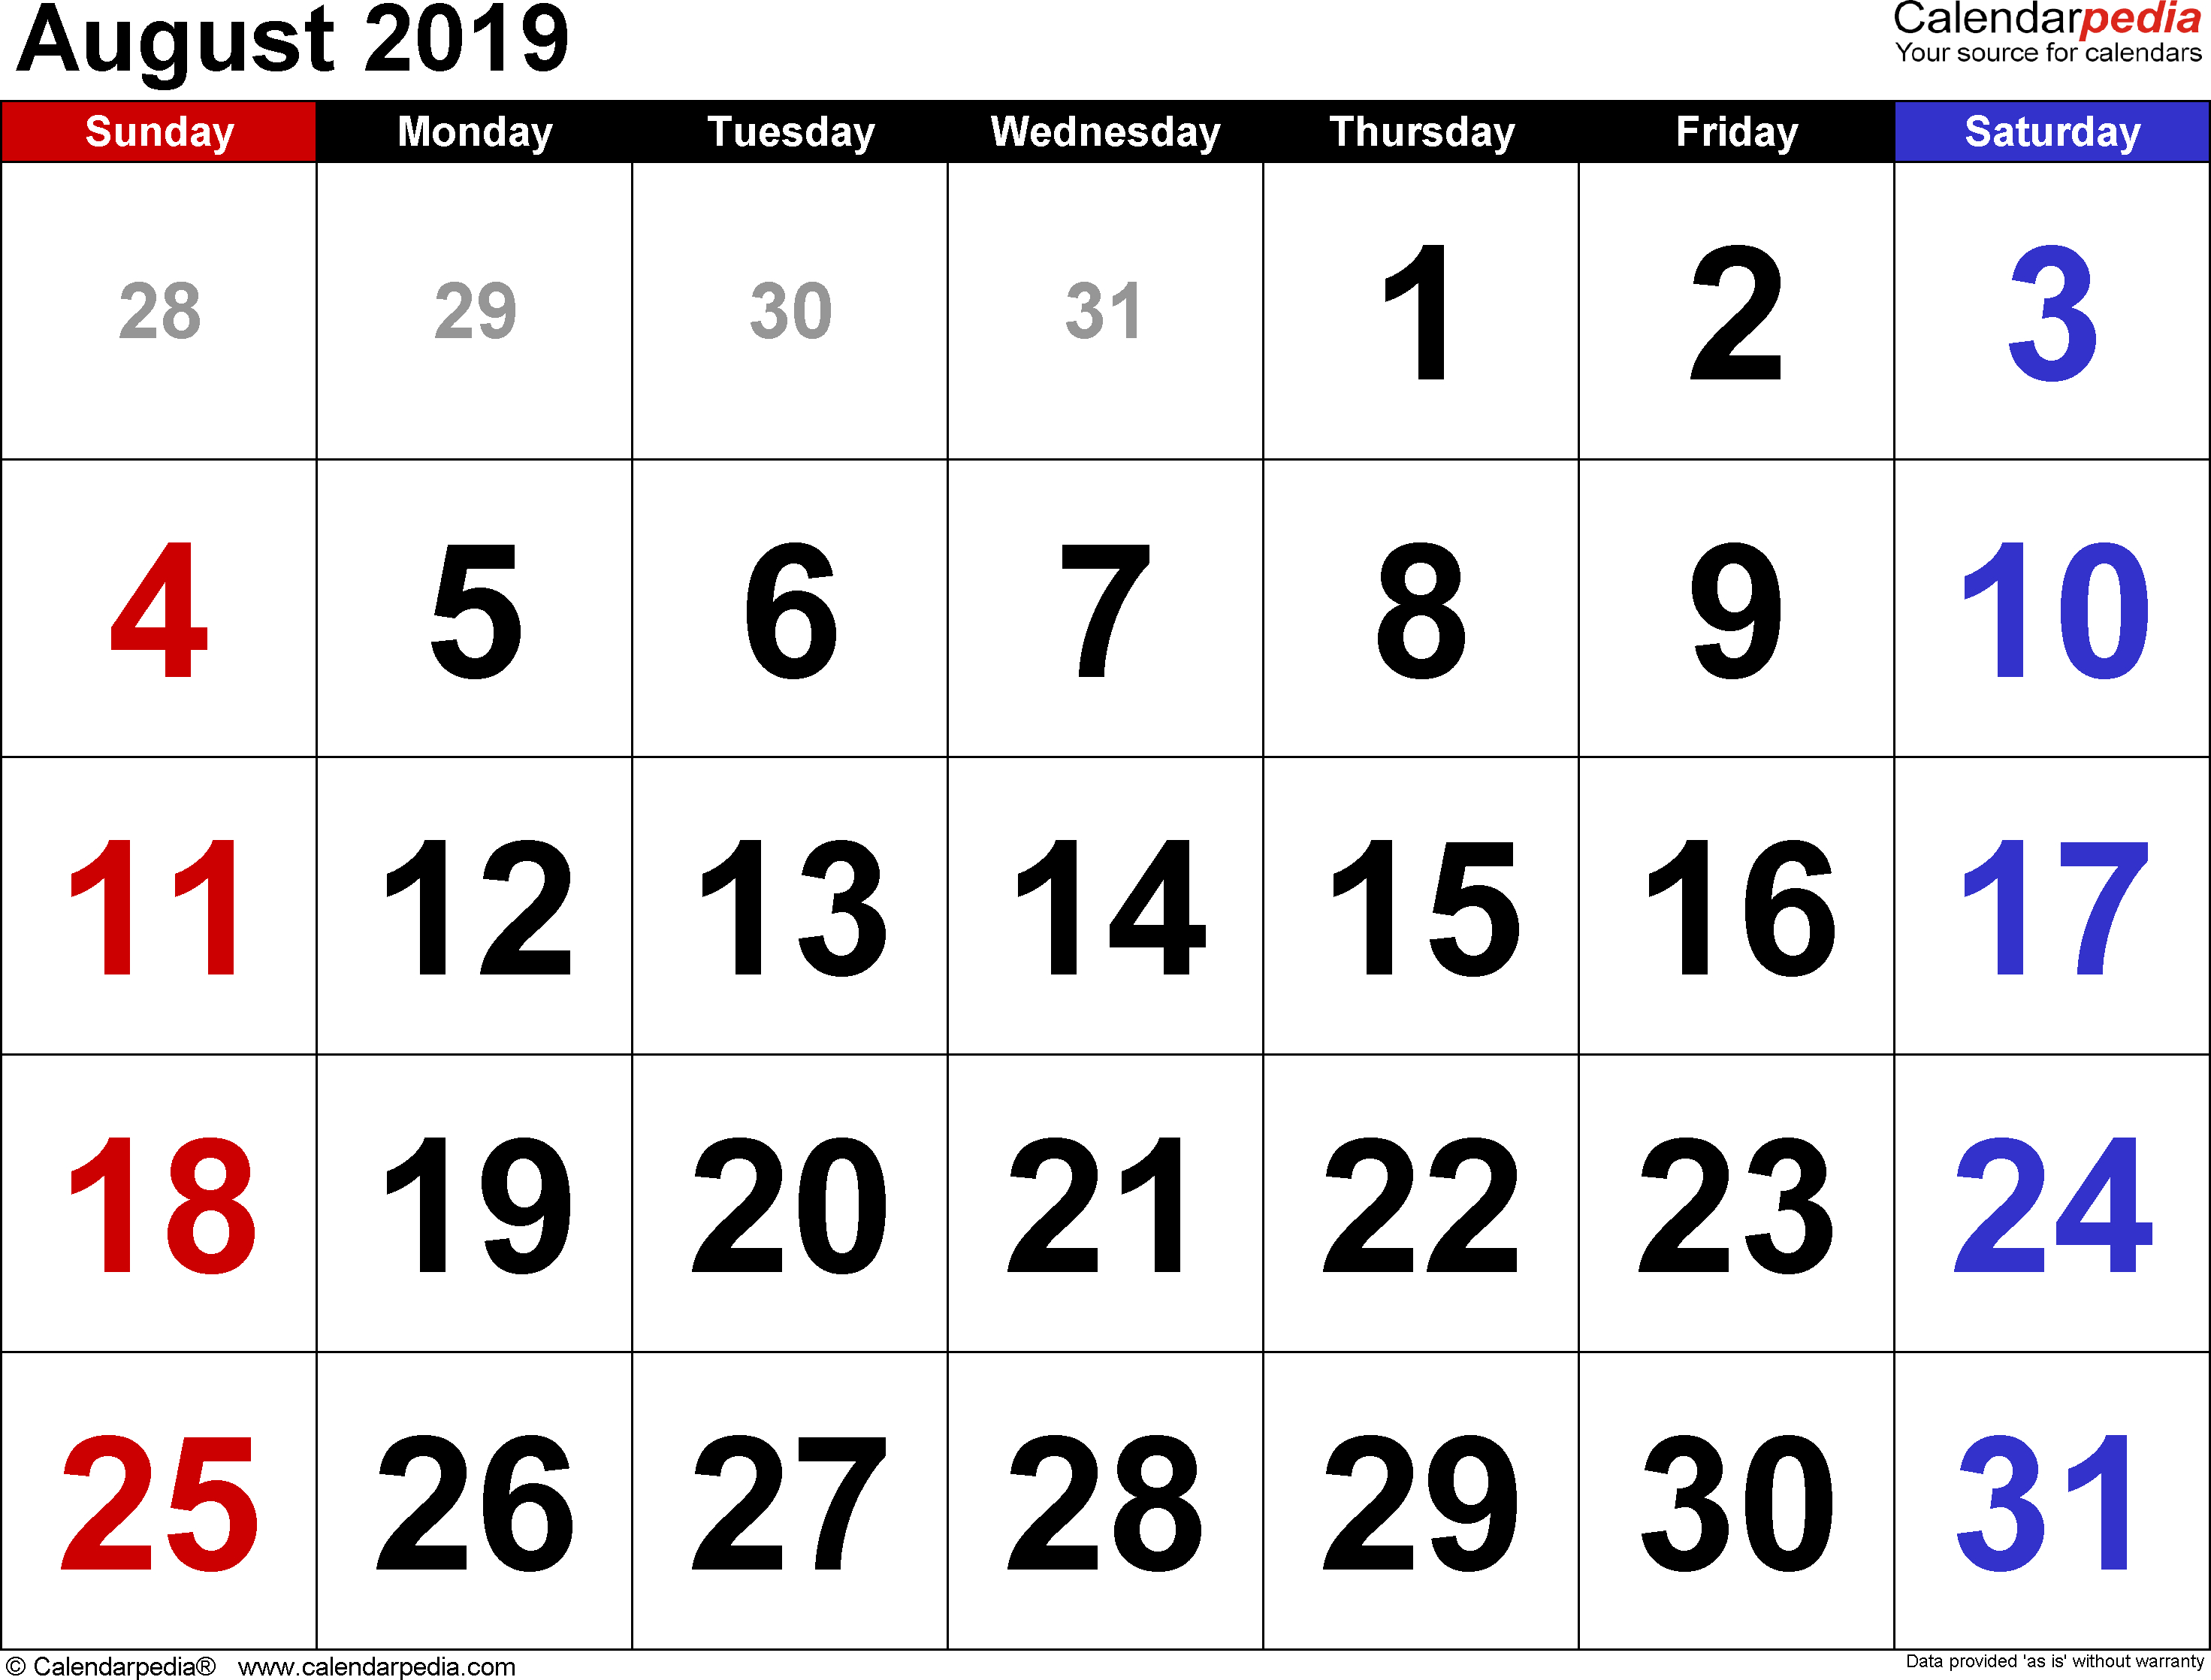 August 2019 Calendars For Word, Excel & Pdf regarding August Calendar Template Excel